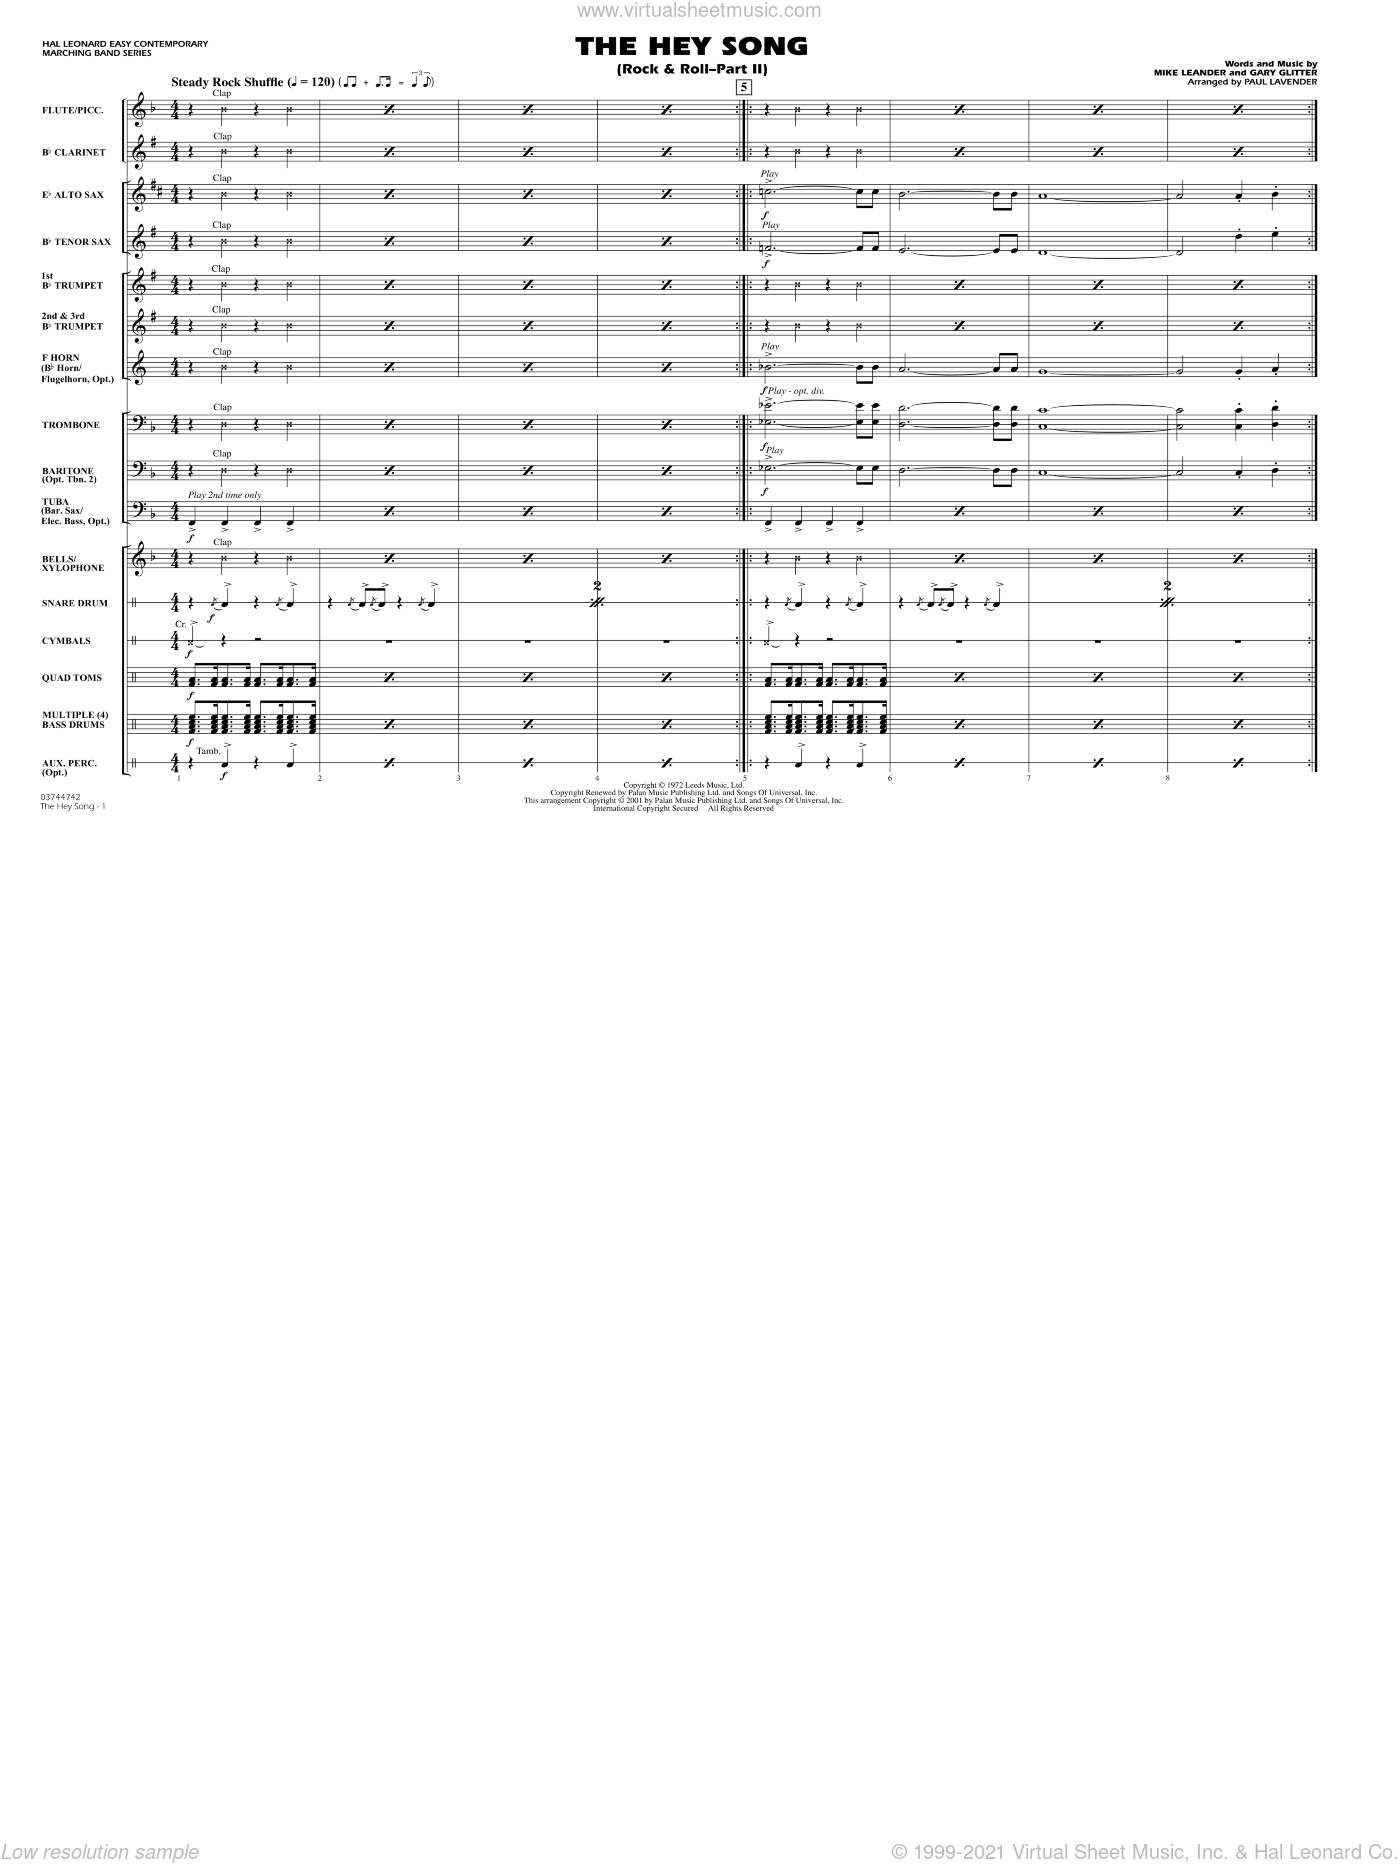 Rock and Roll, part ii (the hey song) sheet music for marching band (full score) by Paul Lavender, Mike Leander and Gary Glitter, intermediate skill level